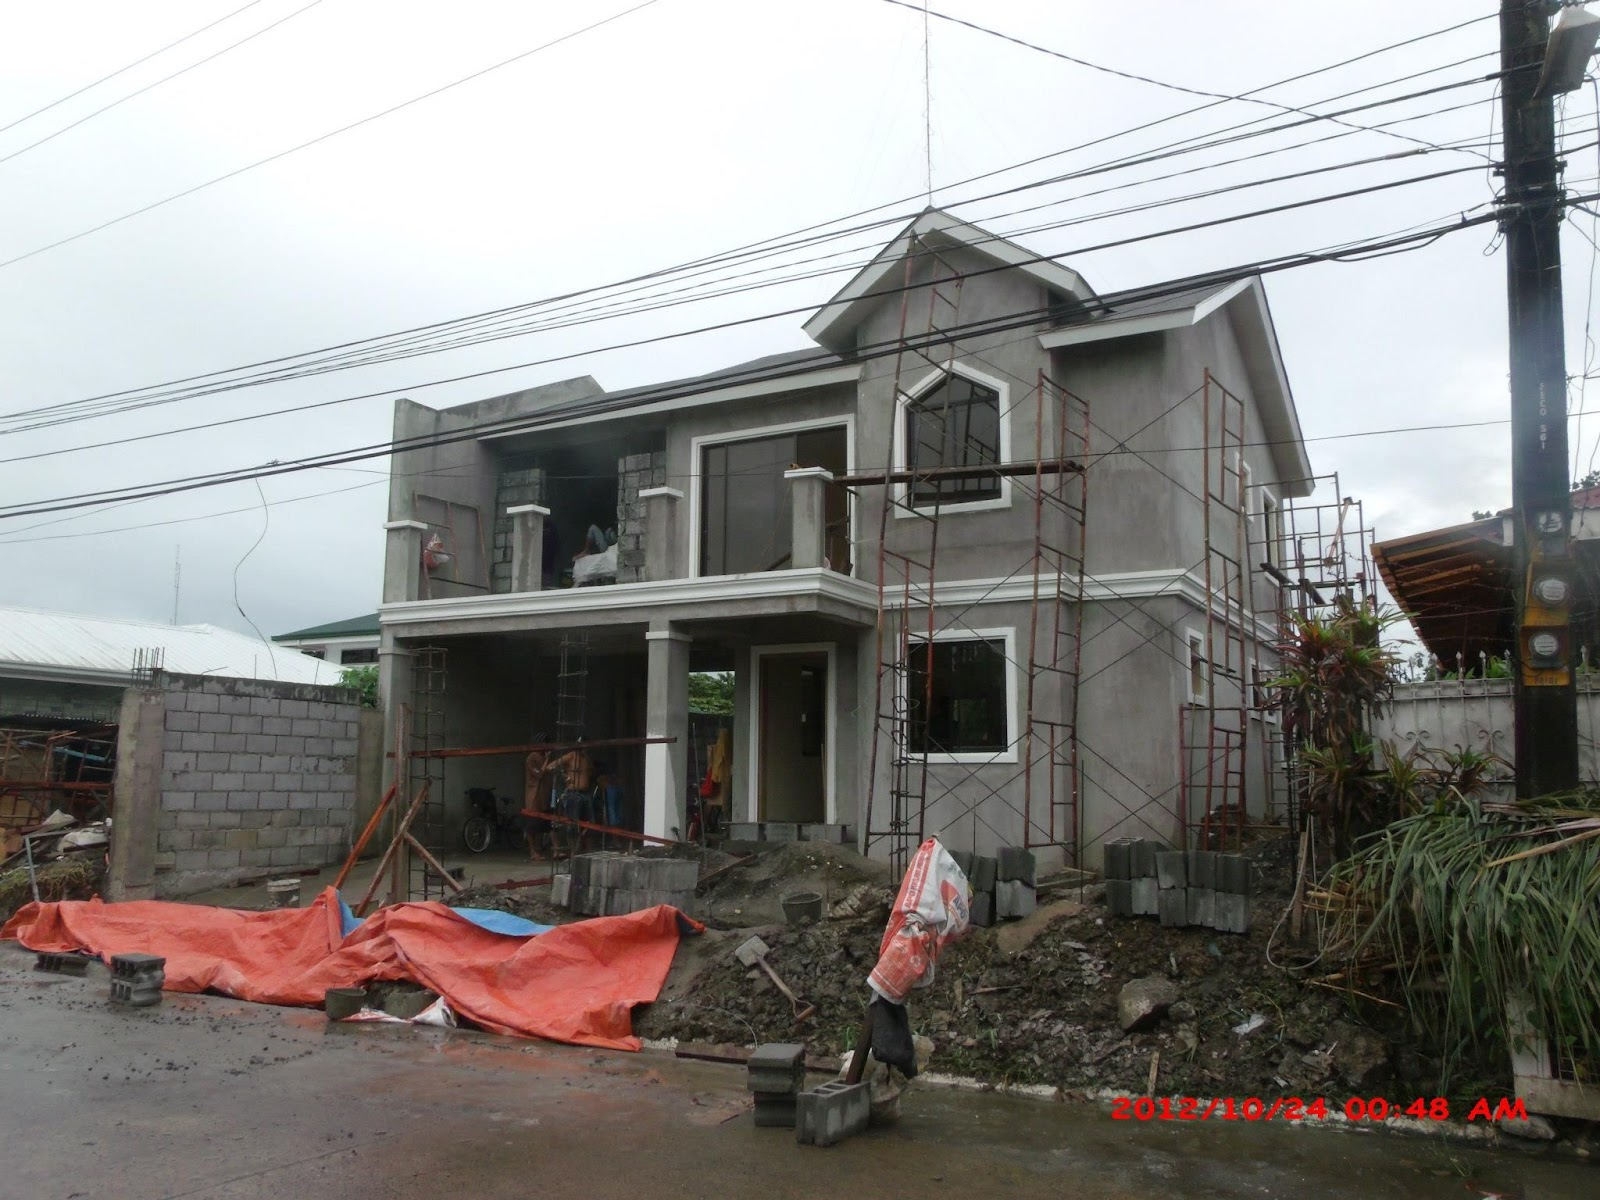 Philippine modern houses pictures house pictures for Modern houses in philippines